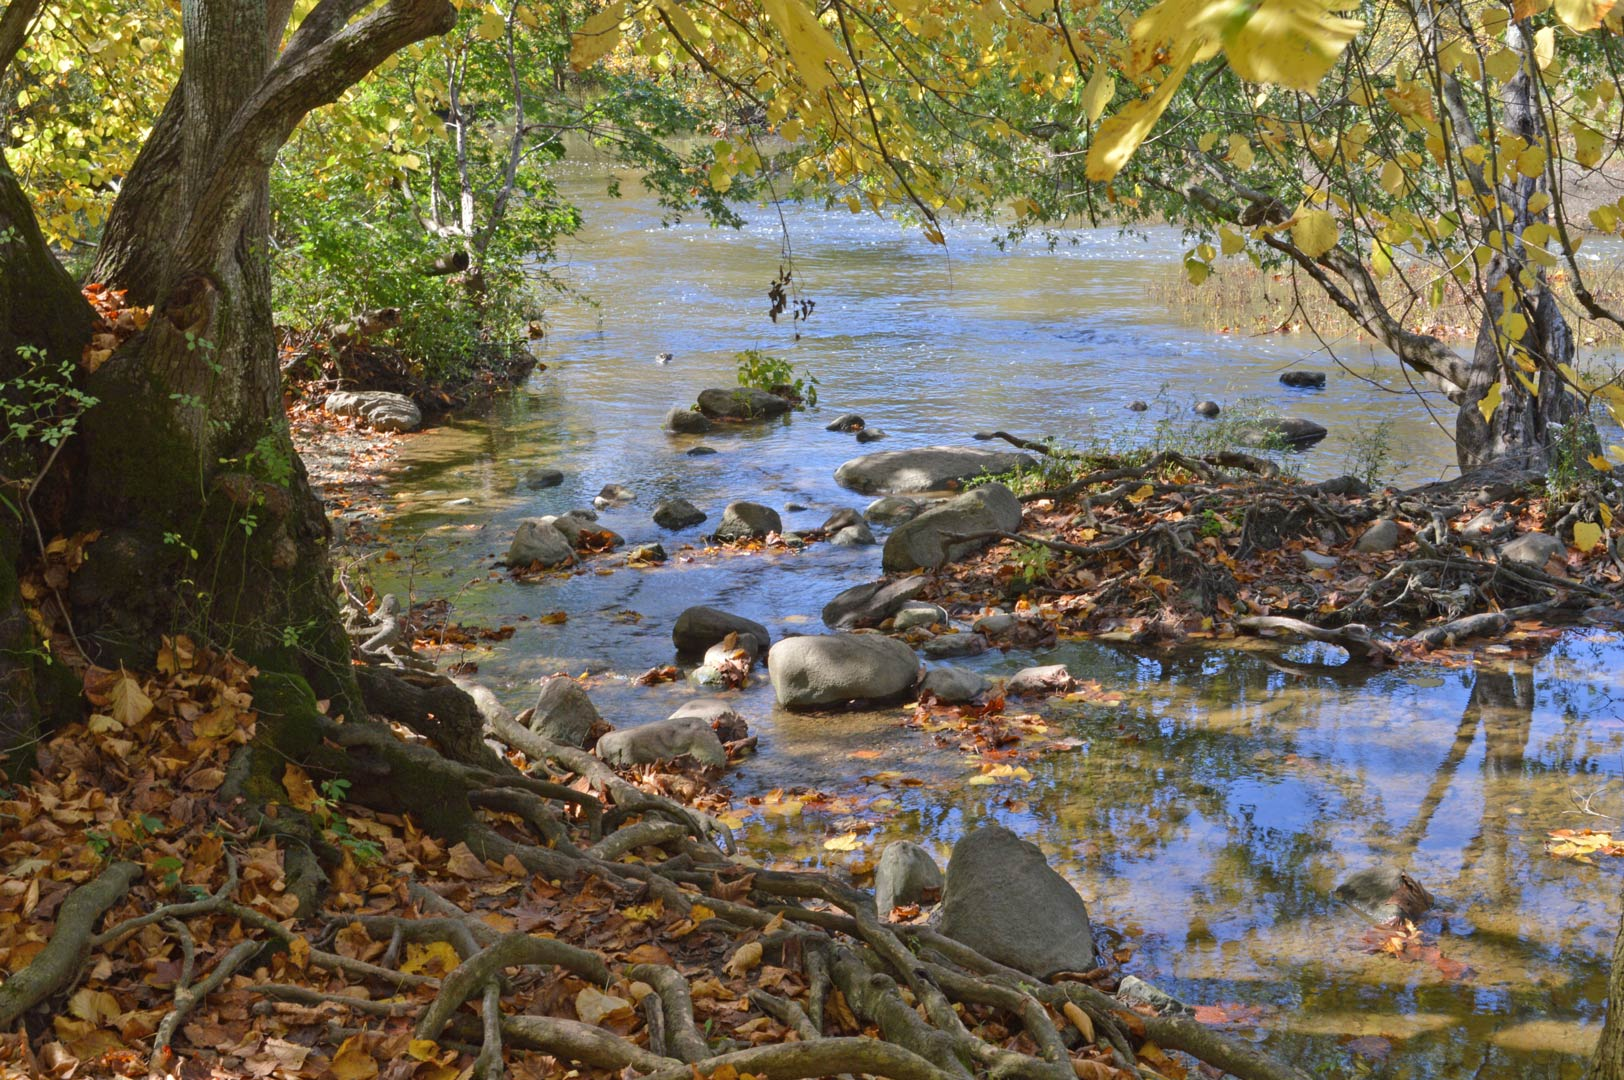 BDC_exposed-tree-roots-along-Darby-Creek_L-Williams.jpg